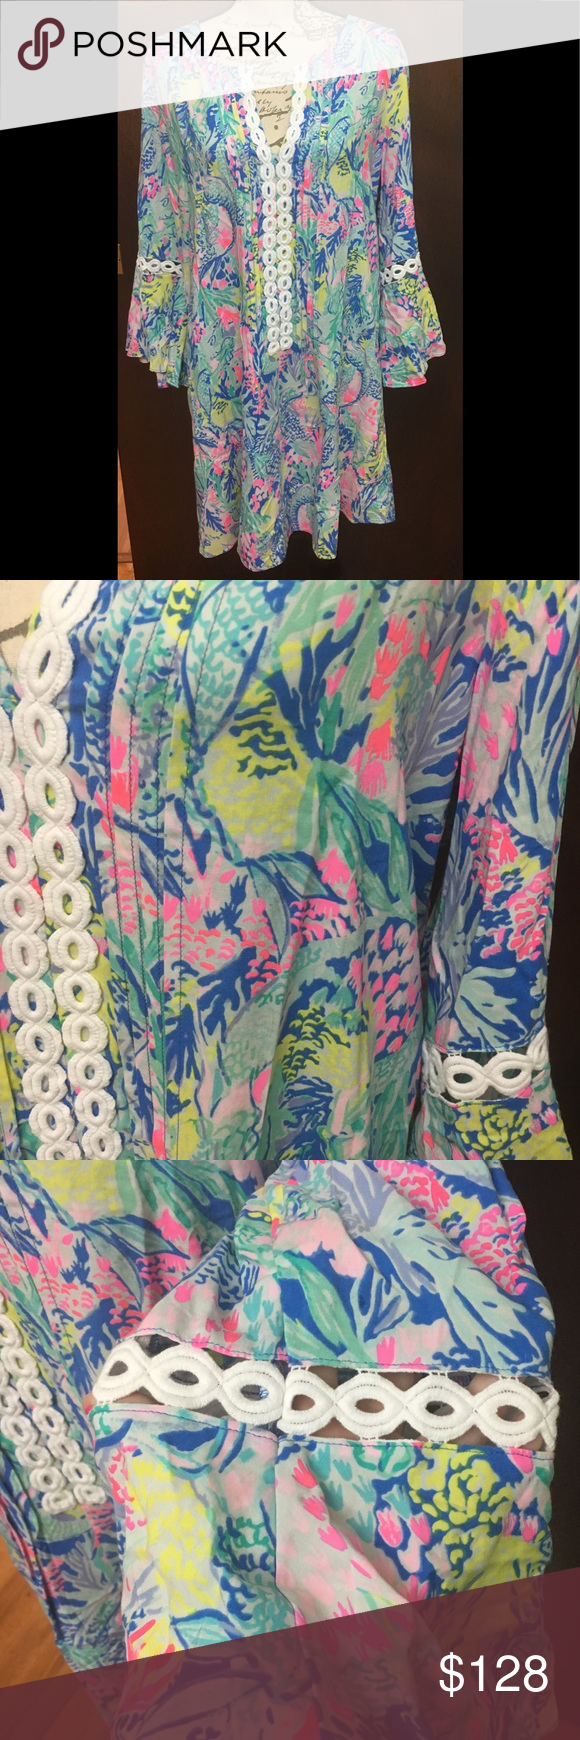 b2a2b71e799 Lilly Pulitzer Mermaids Cove Hollie Tunic Dress XL This dress is NWT  Description from LP: